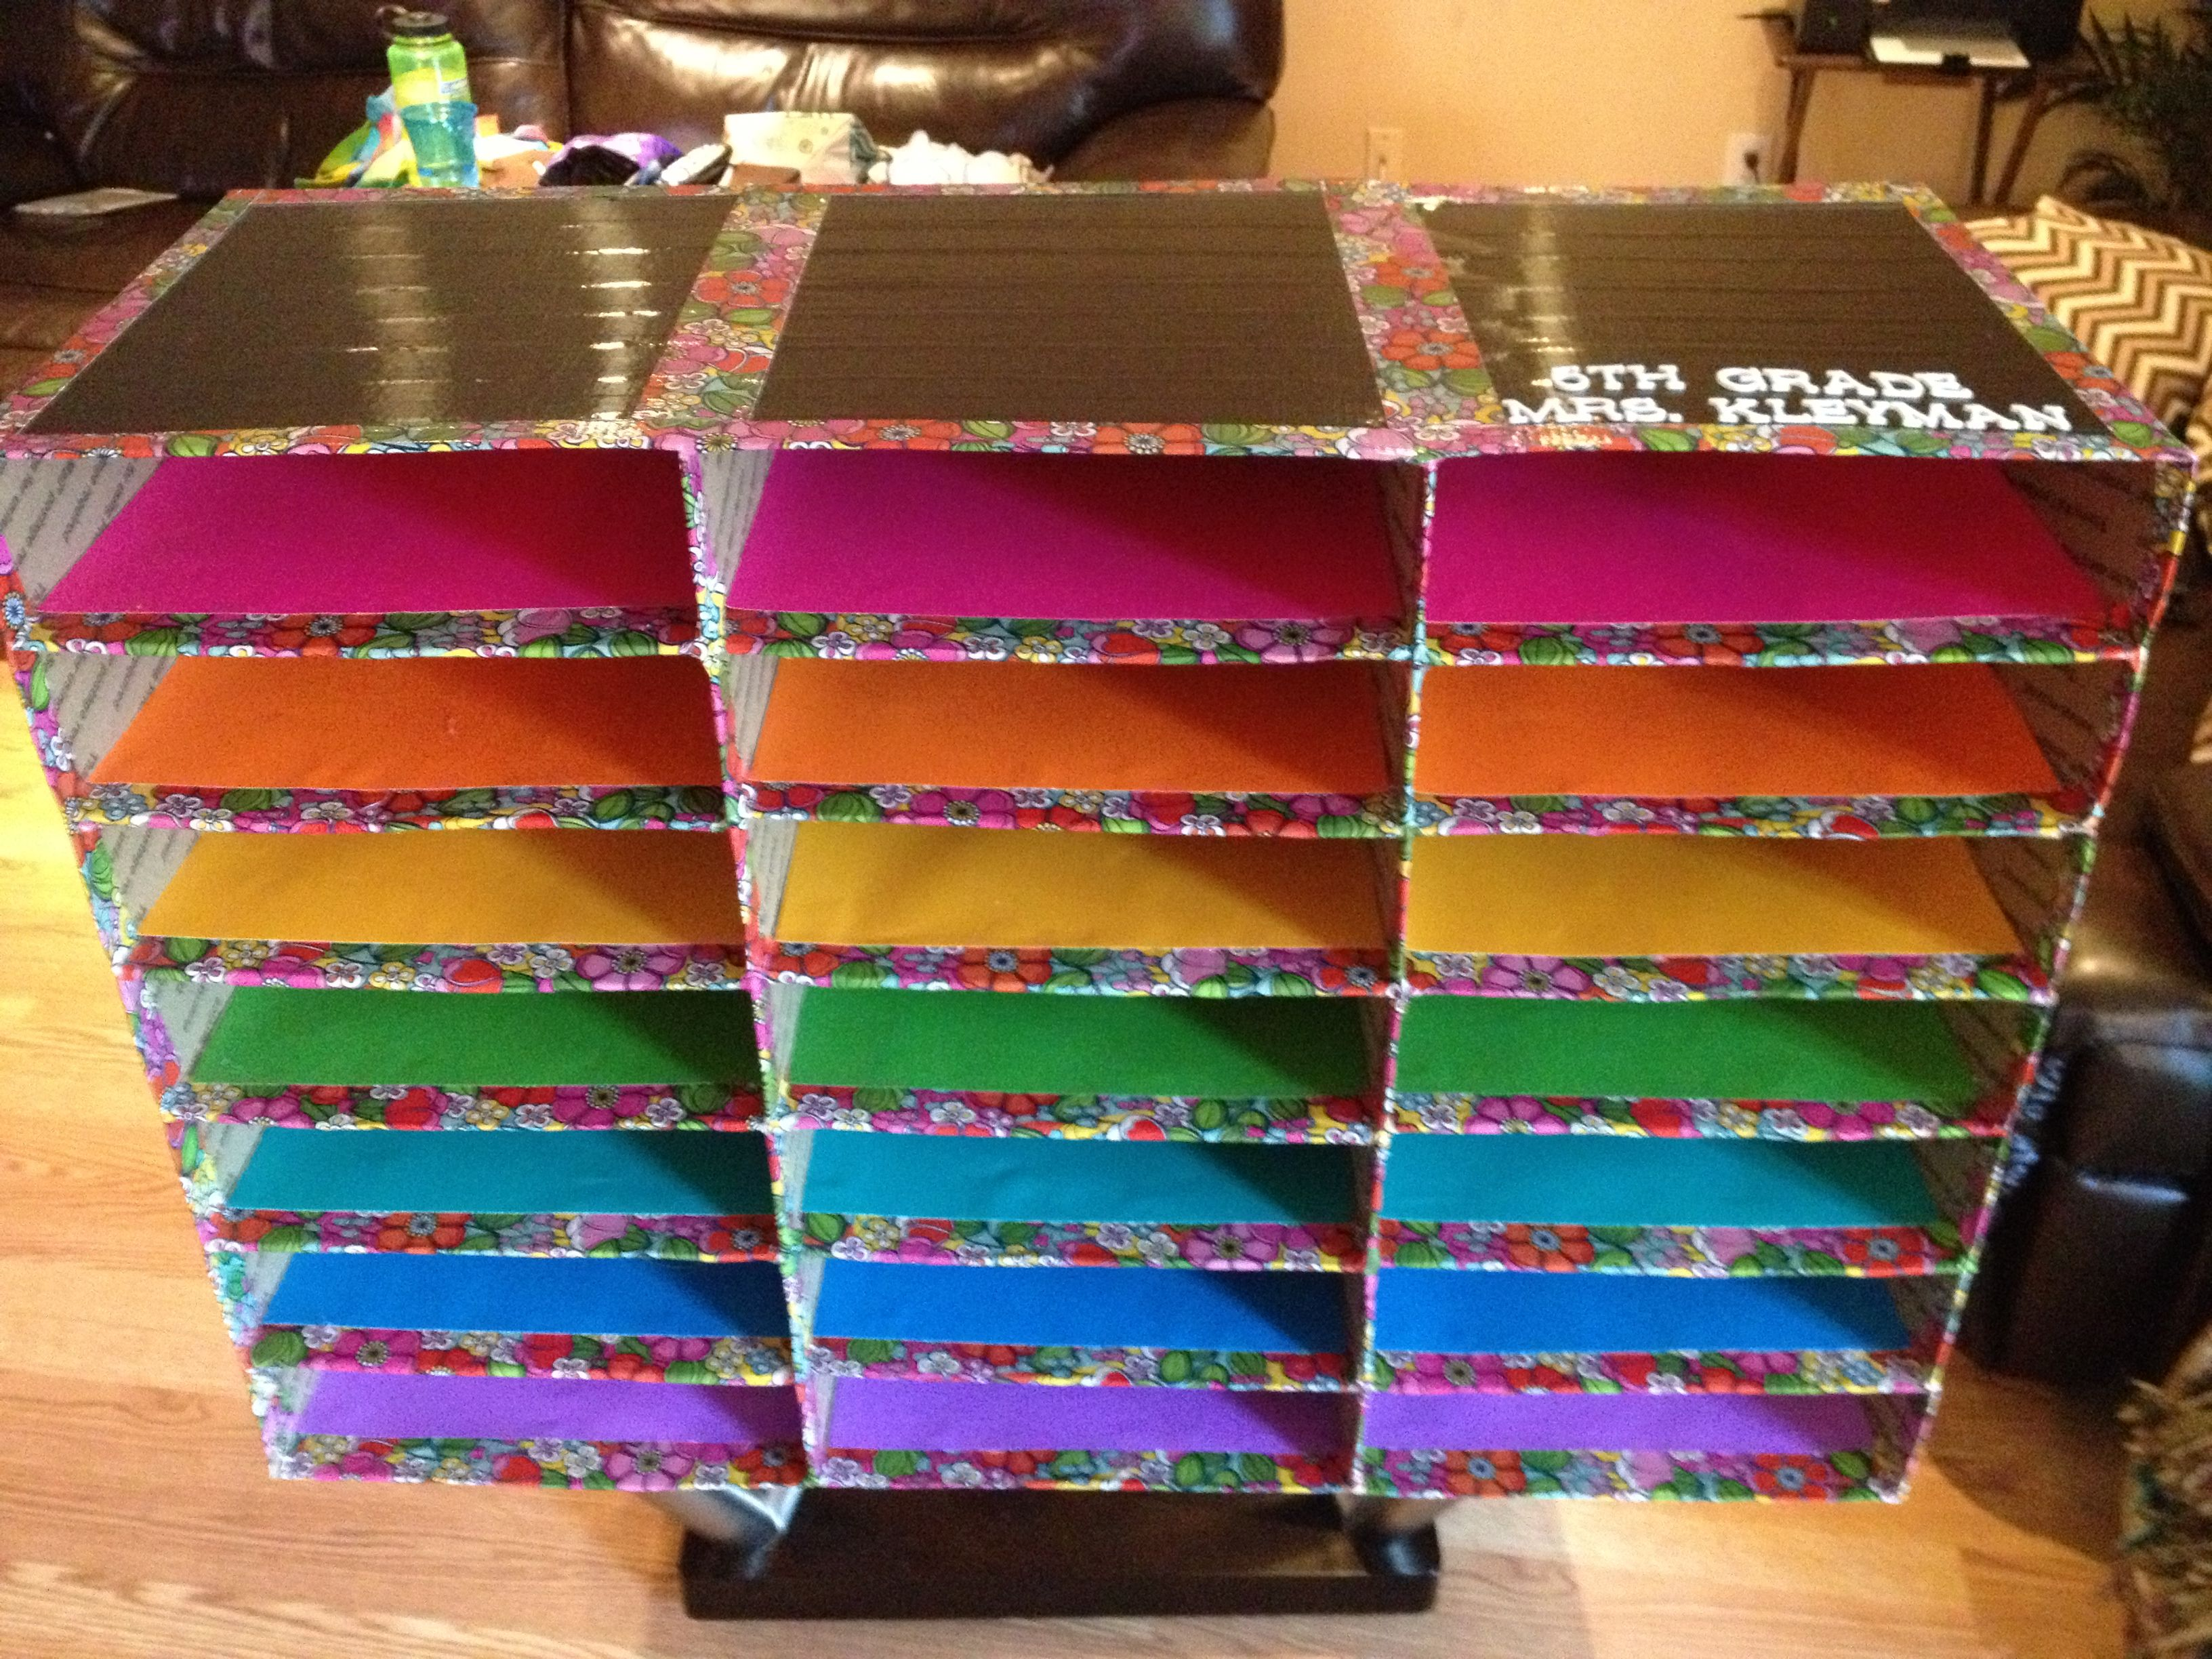 My Diy Classroom Mailboxes Using Flat Rate Shipping Boxes